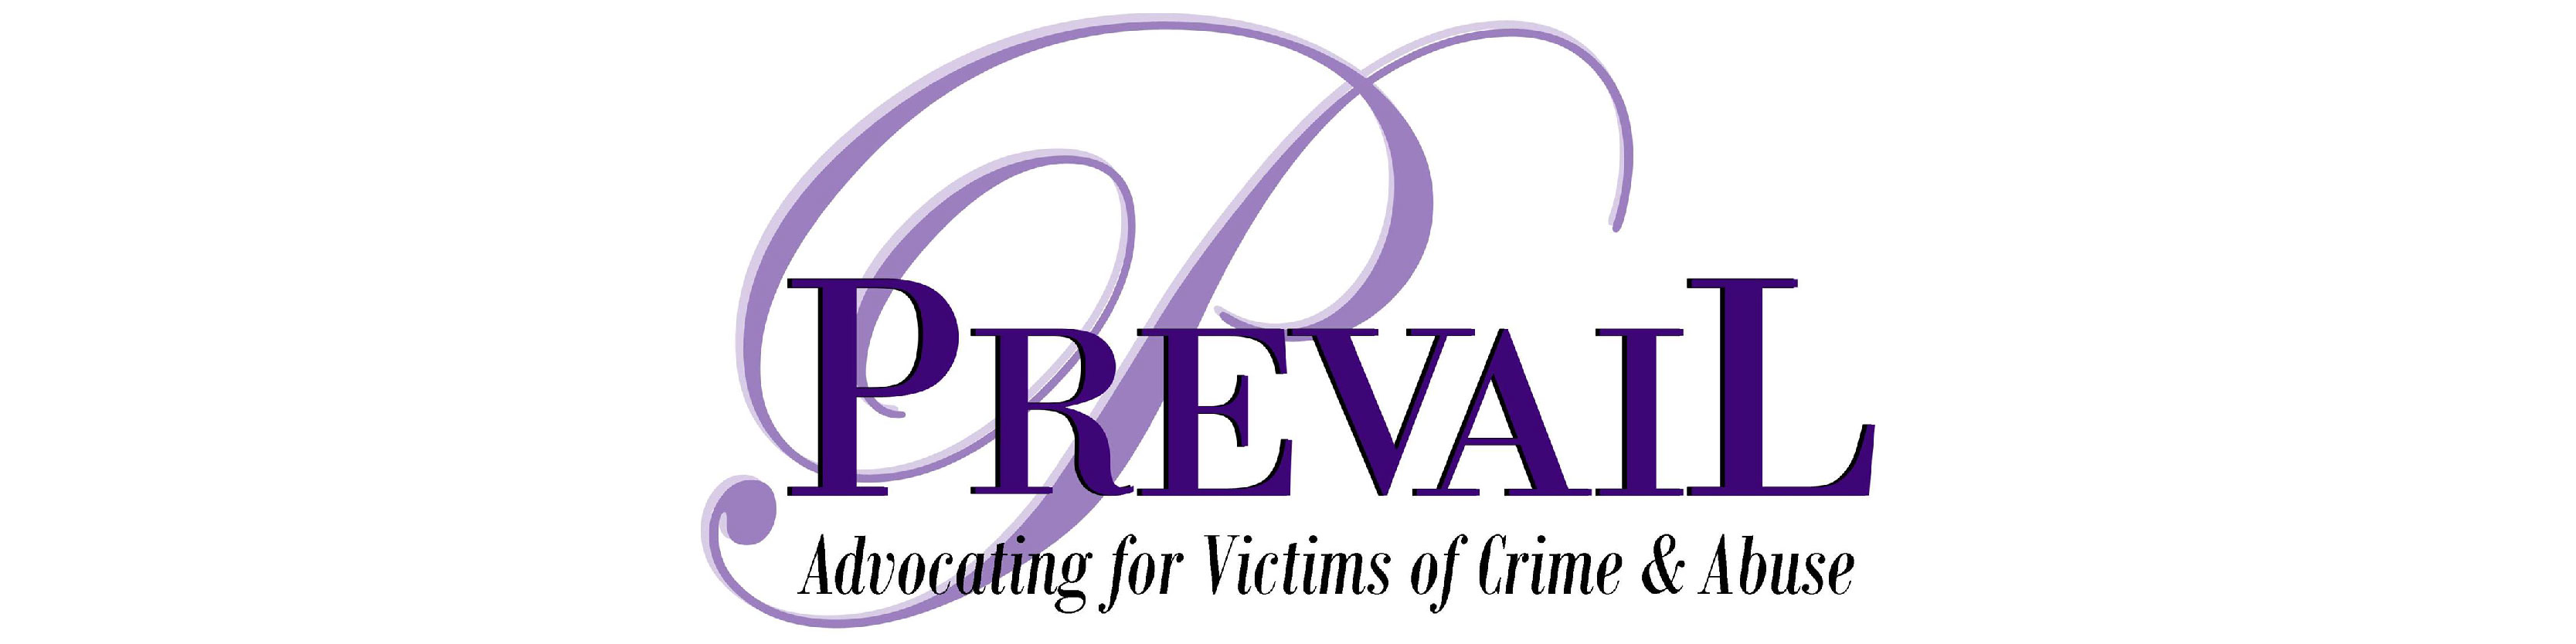 Previal, advocating for victims of crime & abuse.